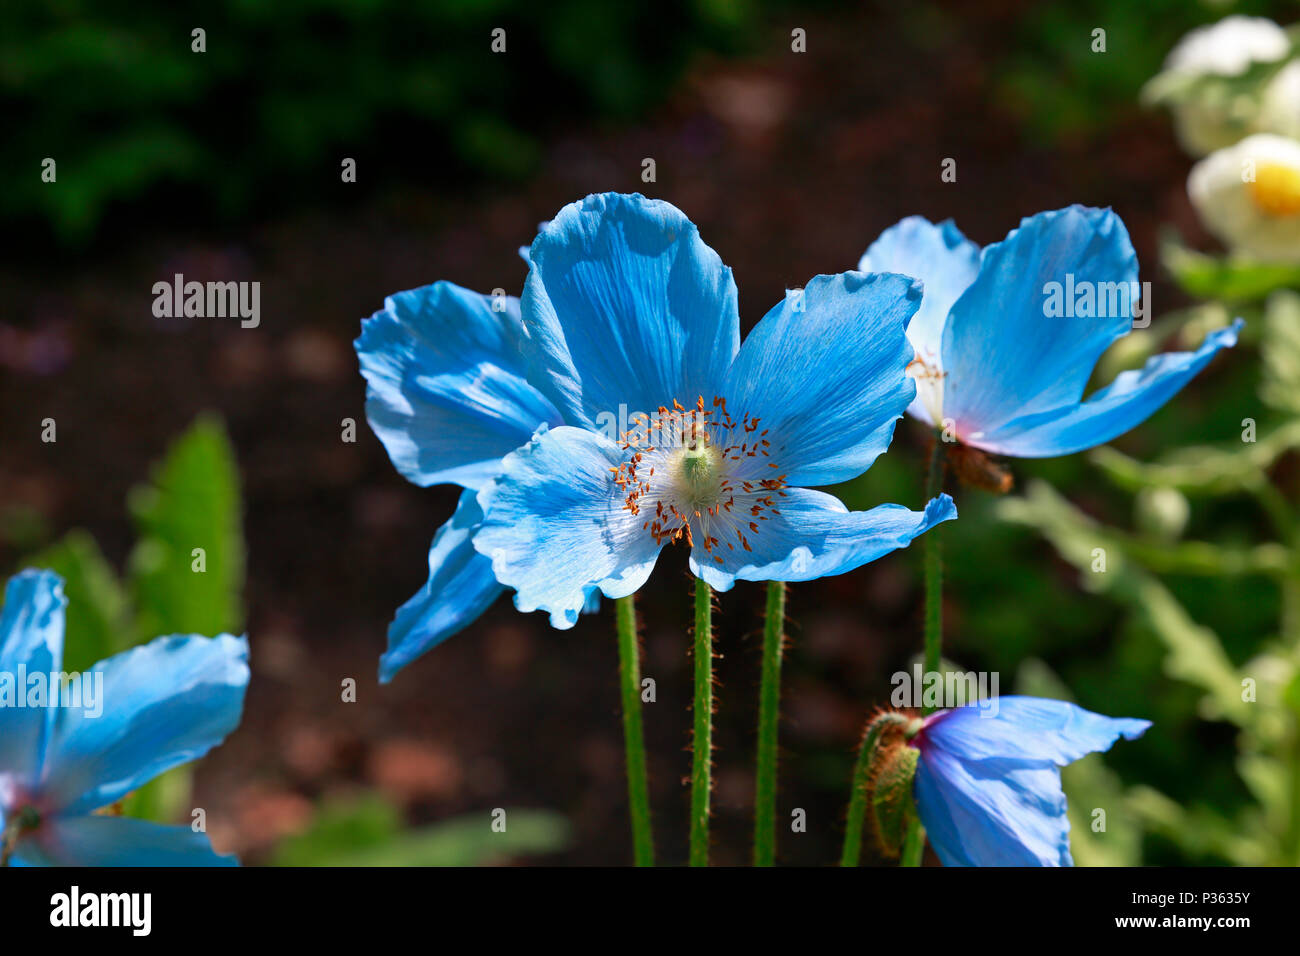 Himalayan poppy, Meconopsis Fertile Blue Group 'Lingholm' flowering in Sheffield Botanical Gardens, Sheffield, England, UK. - Stock Image